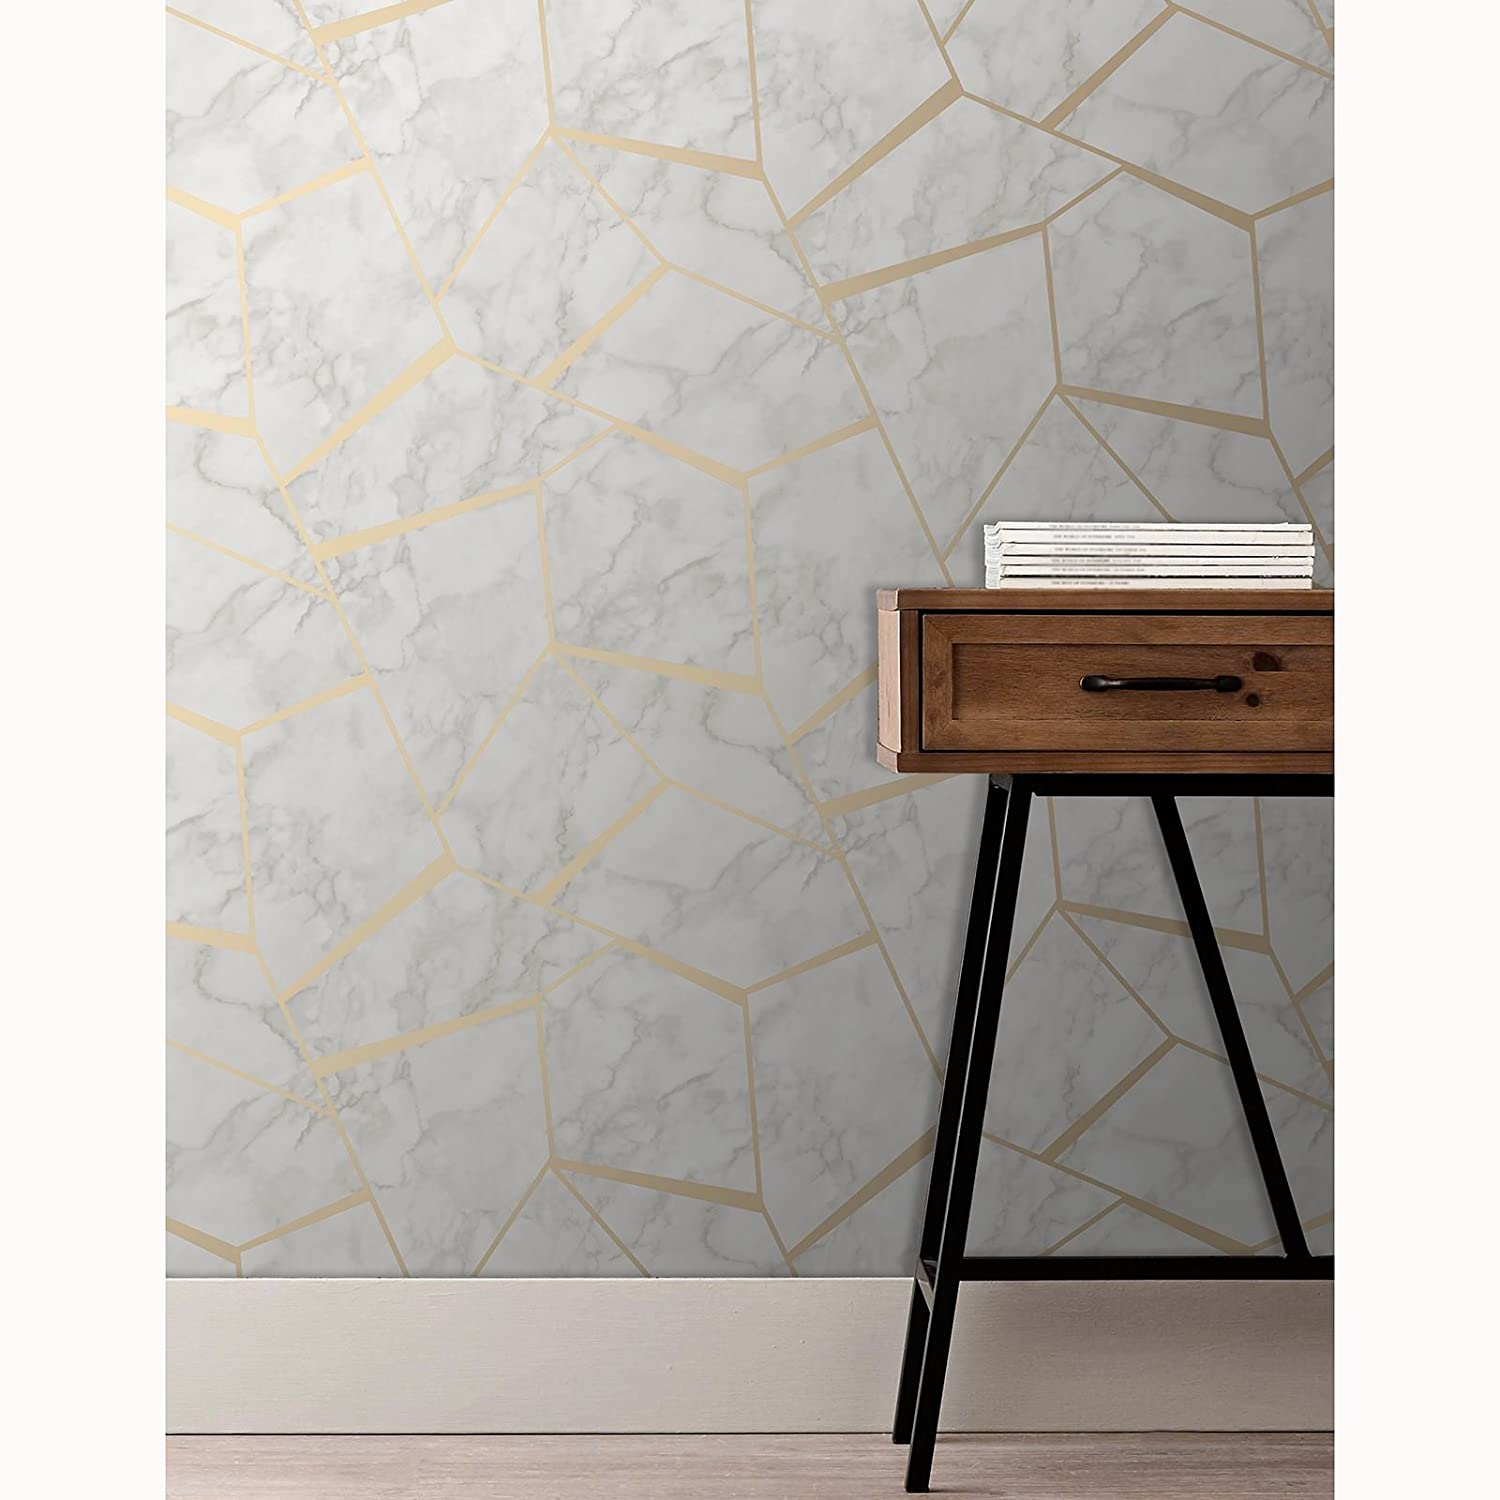 Fractal Geometric Marble Wallpaper Gold And White Fine Decor